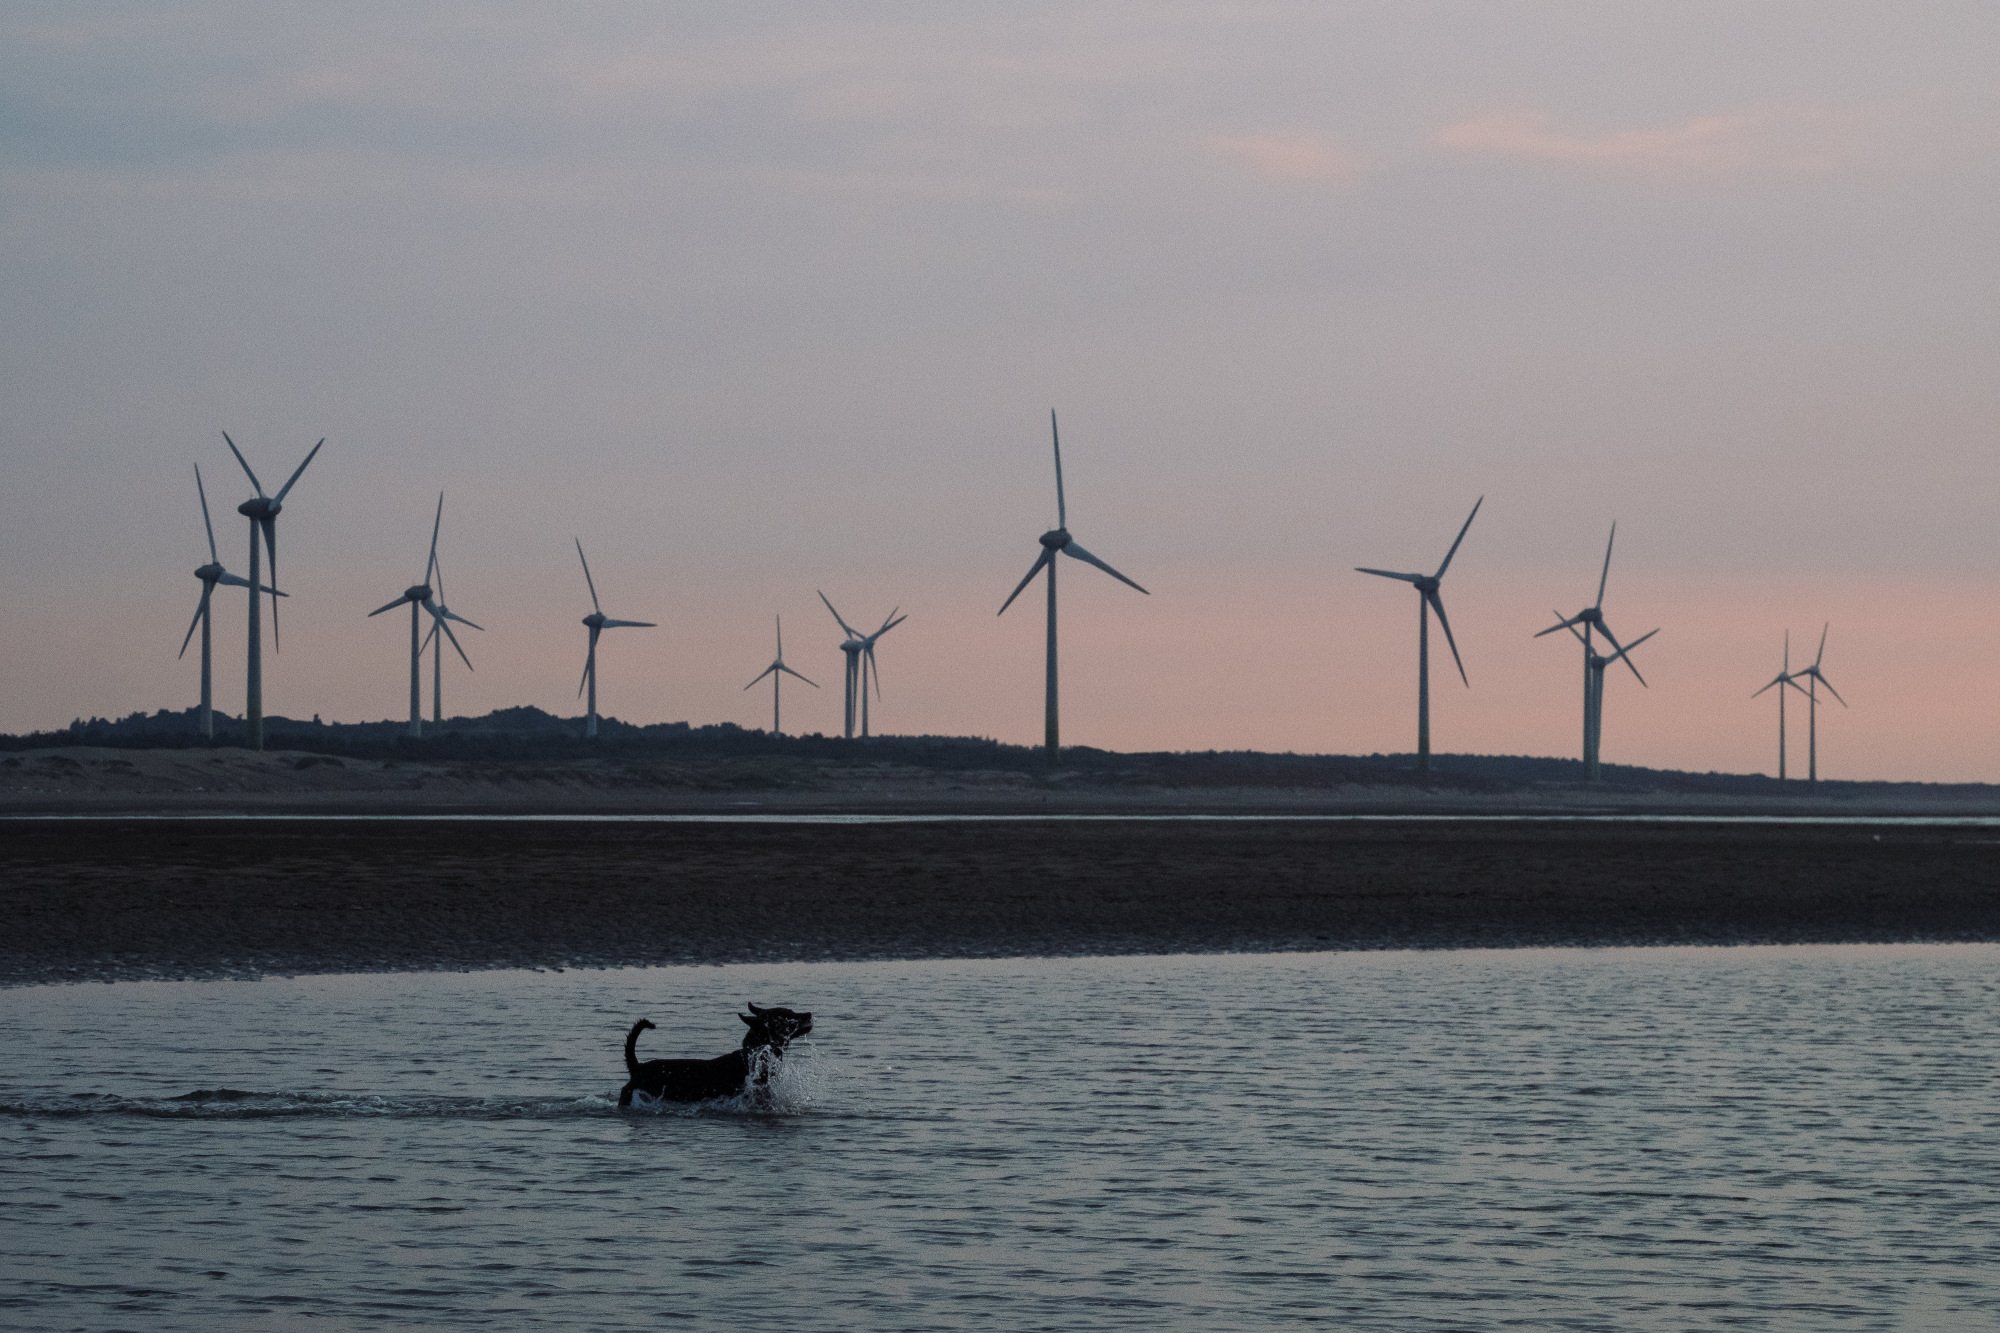 A dog swims as wind turbines stand along a beach in Miaoli County, Taiwan, on Thursday, July 26, 2018. Since a disastrous 2011 reactor meltdown in Japan, more than 1,400 miles (2,250 kilometers) away, Taiwan has rewritten its energy plans. President Tsai Ing-wen ordered all of the country's nuclear reactors to shut by 2025. Photographer: Billy H.C. Kwok/Bloomberg